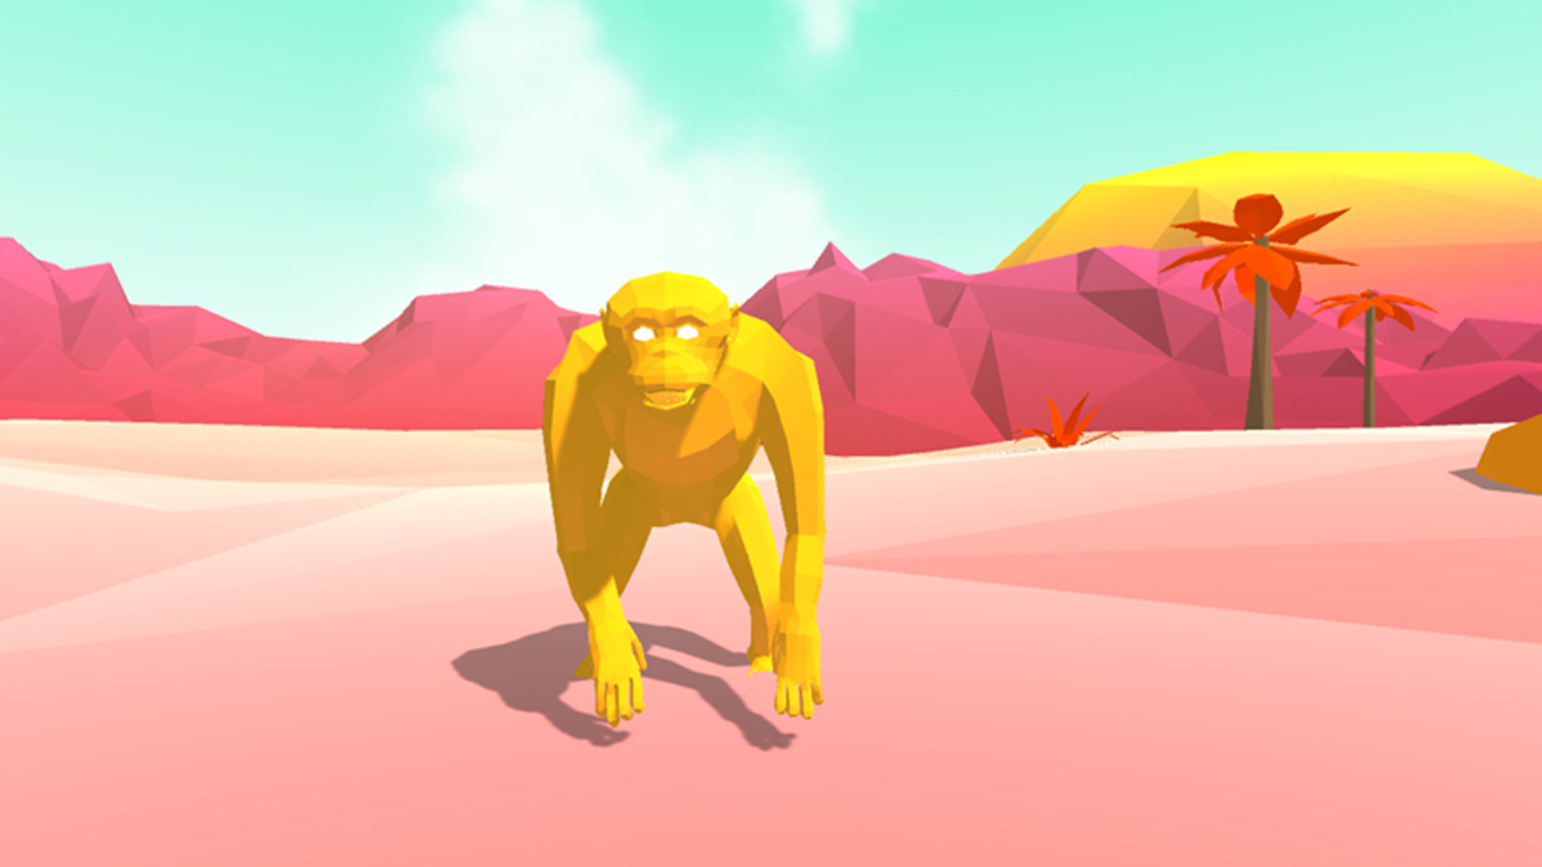 Still from a video game showing a yellow gorilla